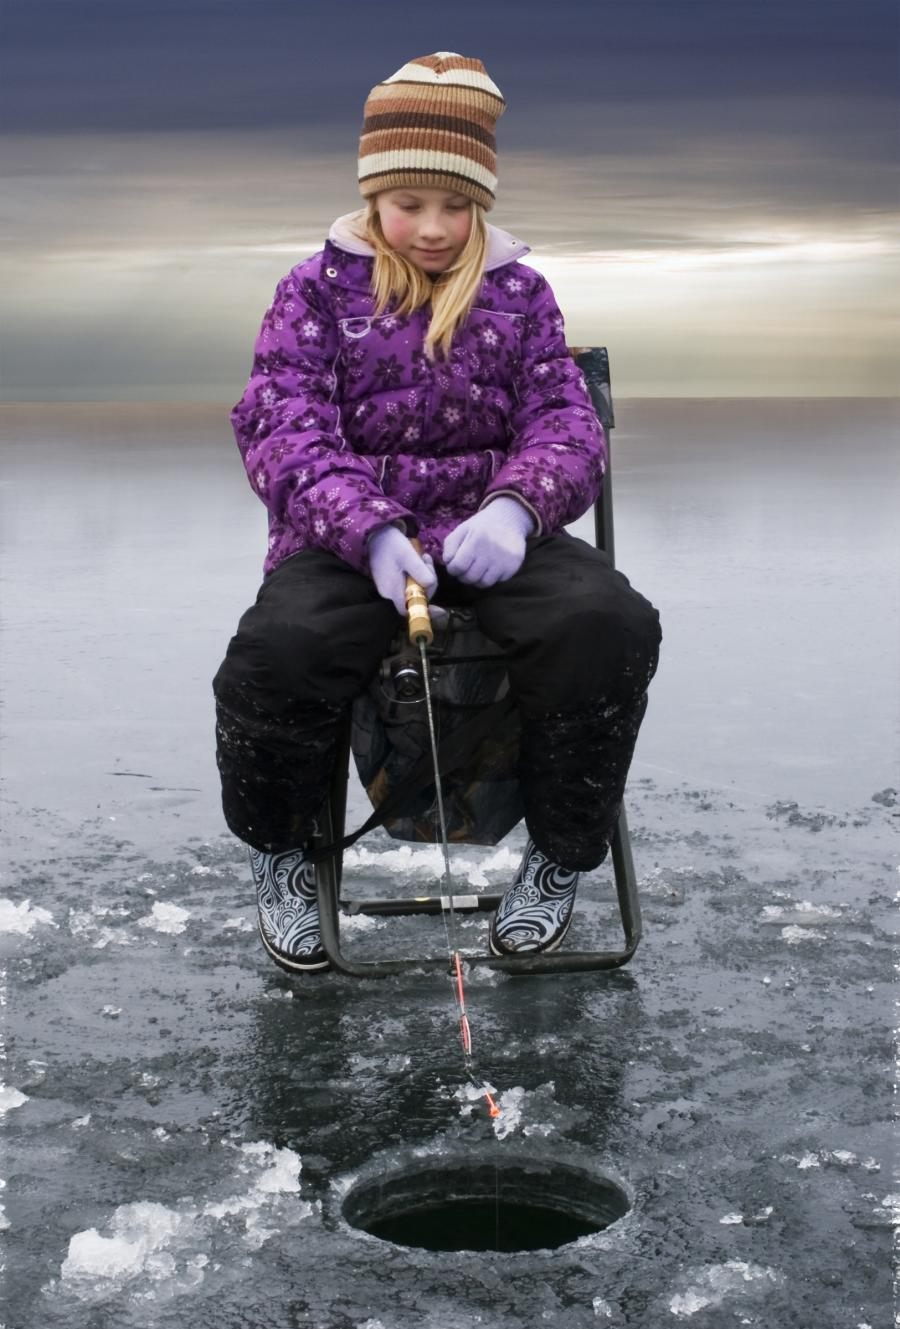 Ice Fishing-Little Girl